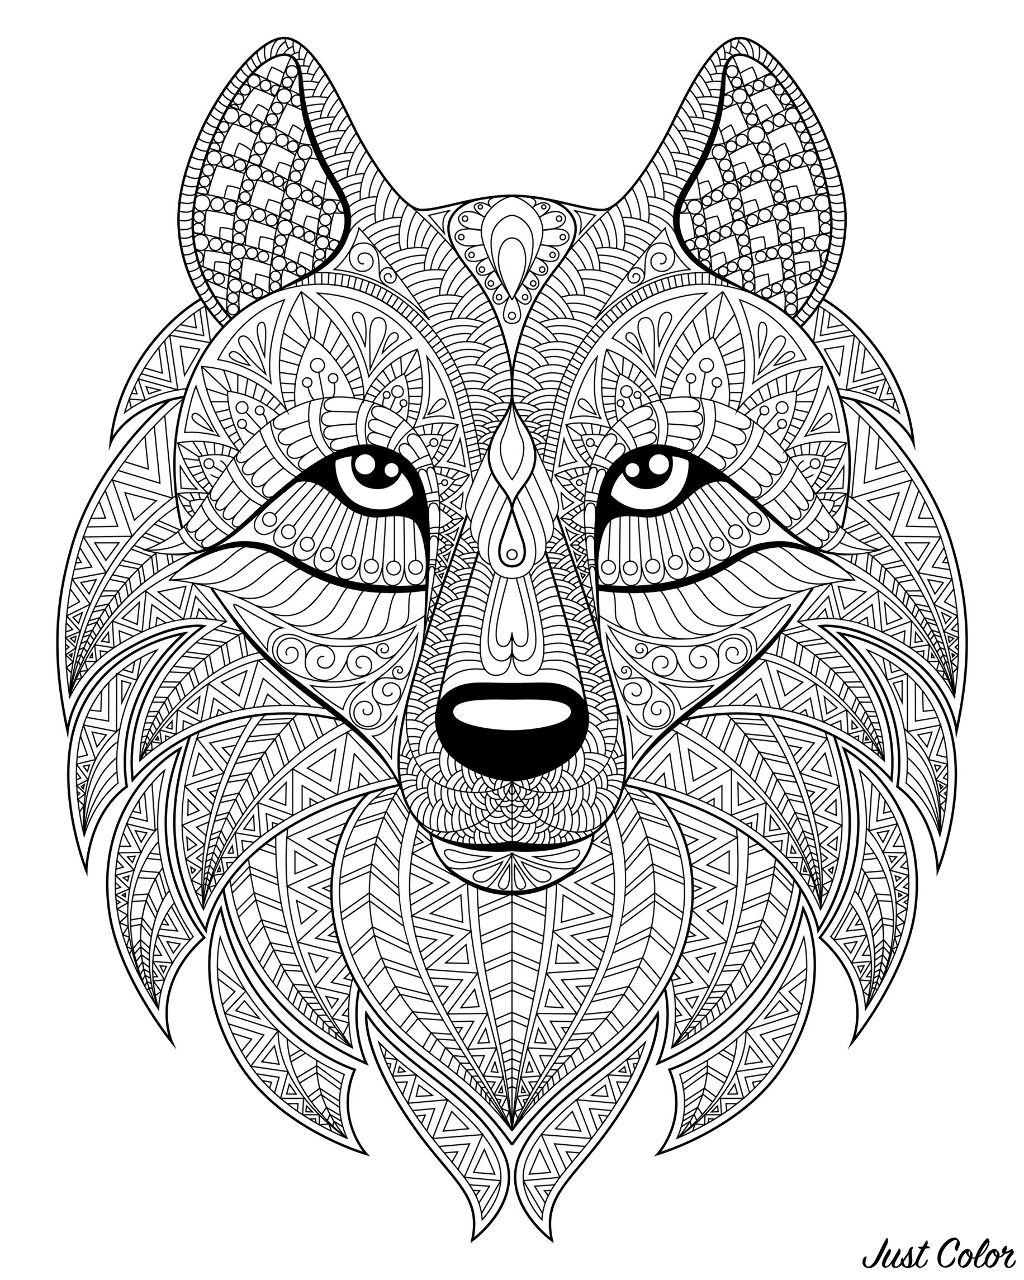 Wolf head, with complex patterns